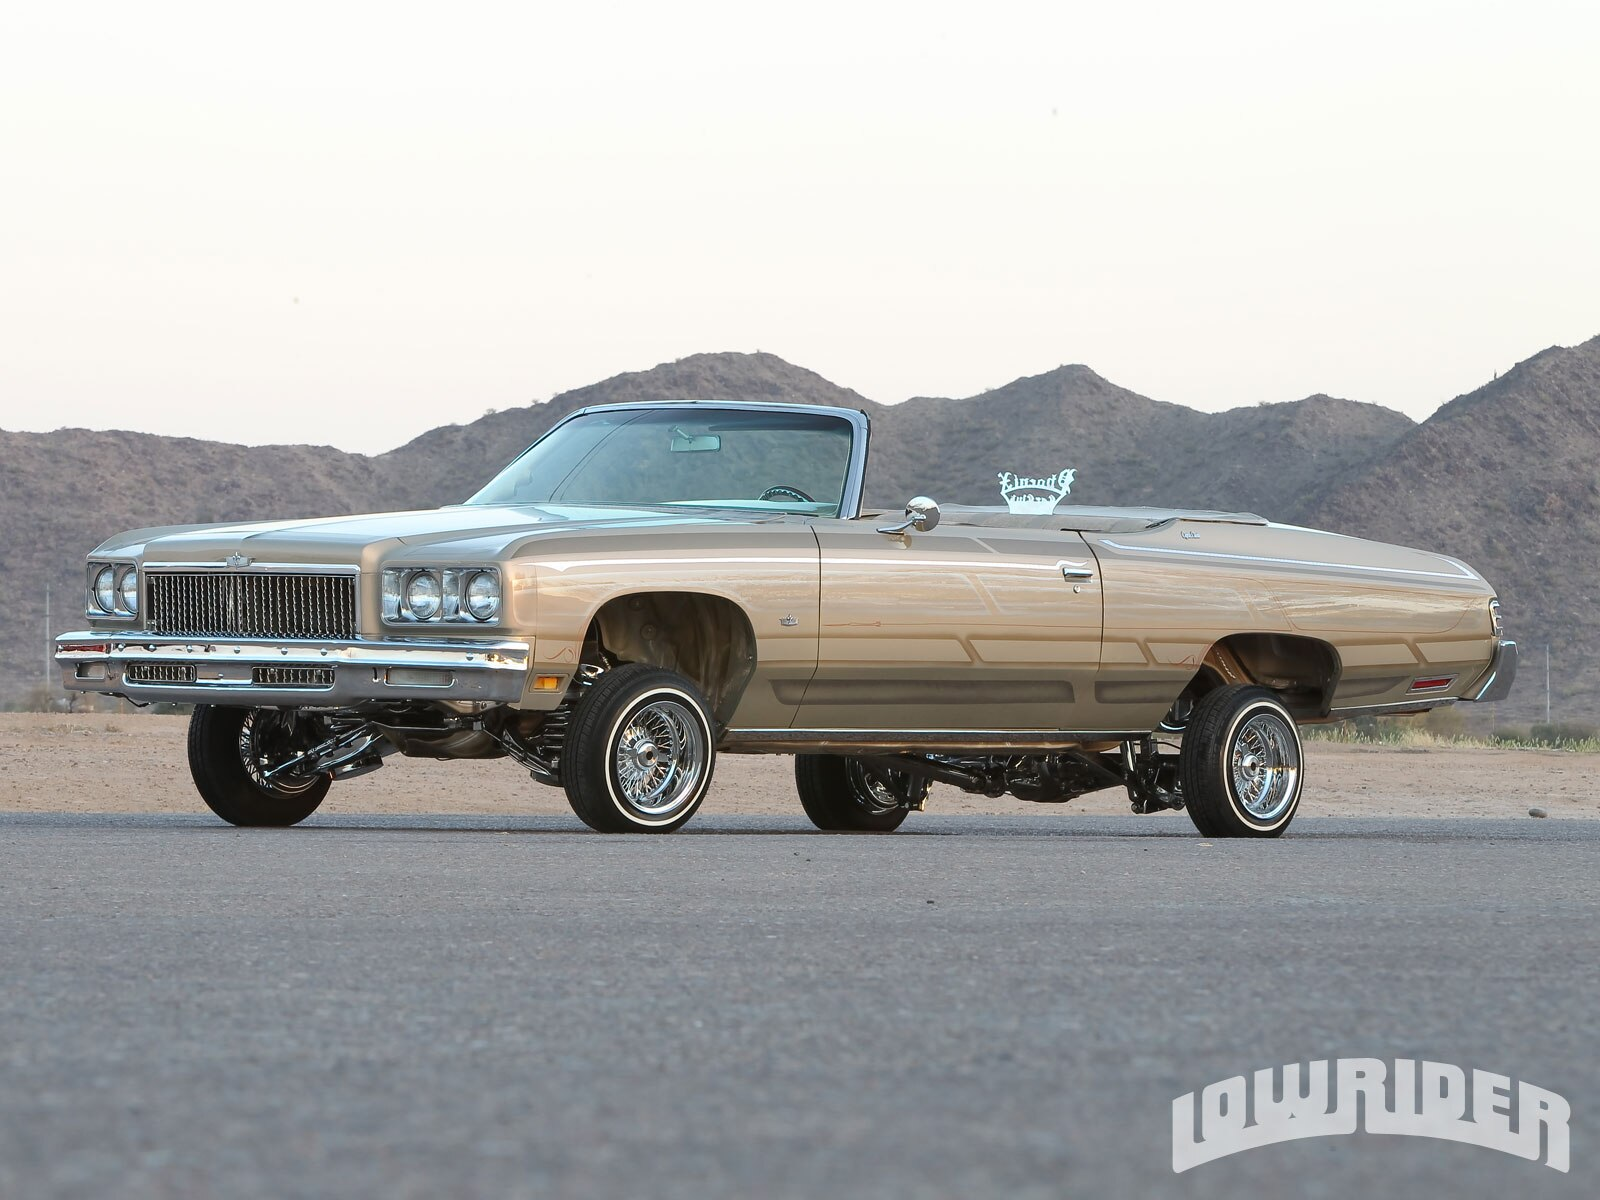 1212-lrmp-01-o-1975-chevrolet-caprice-convertible-driver-side-front-view1